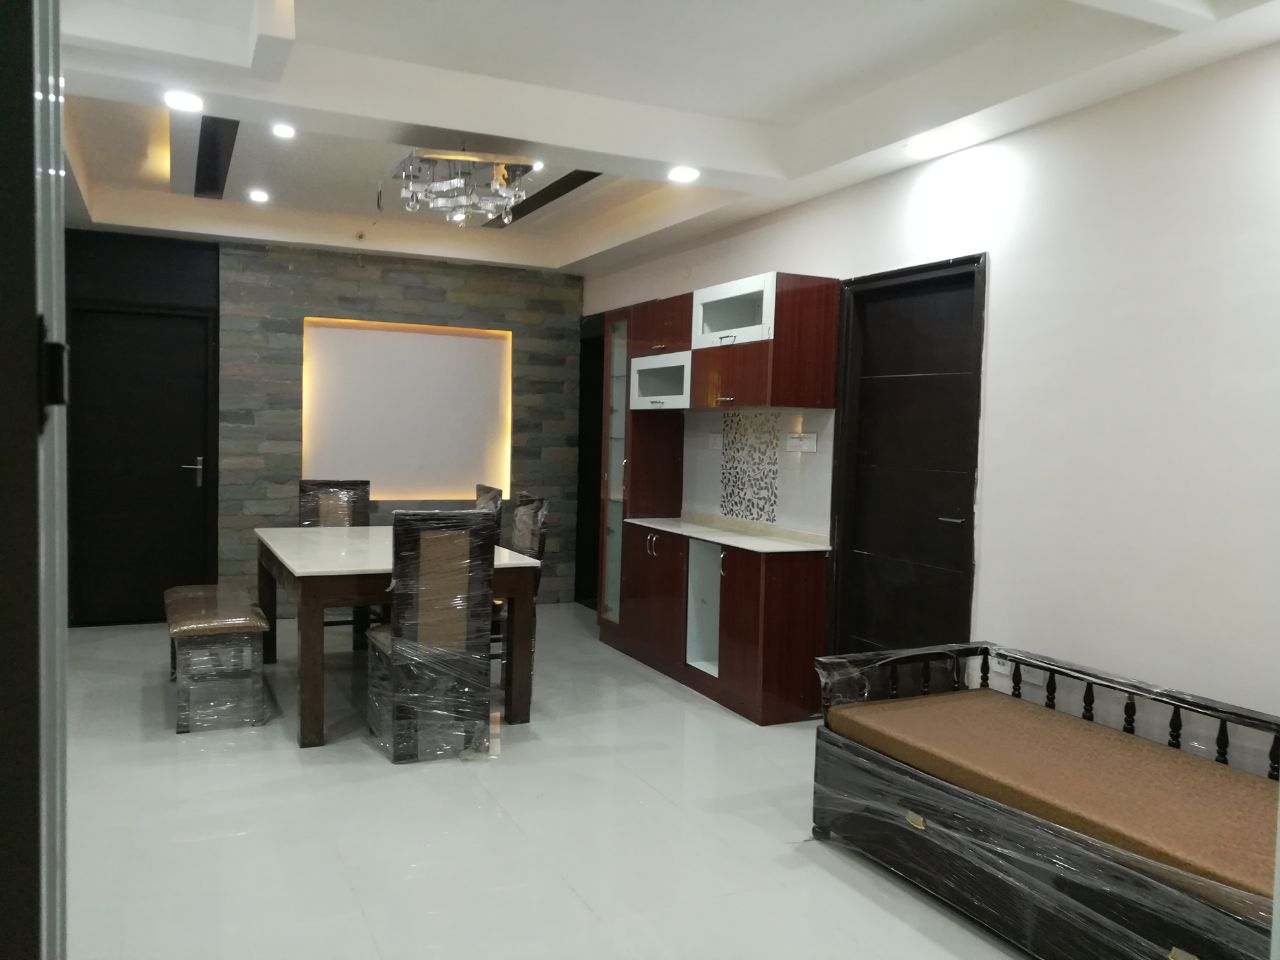 R7 INTERIORS, LOW COST INTERIORS IN HYDERABAD,LOW COST INTERIORS IN UPPAL,LOW COST INTERIORS IN MANIKONDA,LOW COST INTERIORS IN TOLICHOWKI, LOW COST INTERIORS IN GACCHIBOWLI,